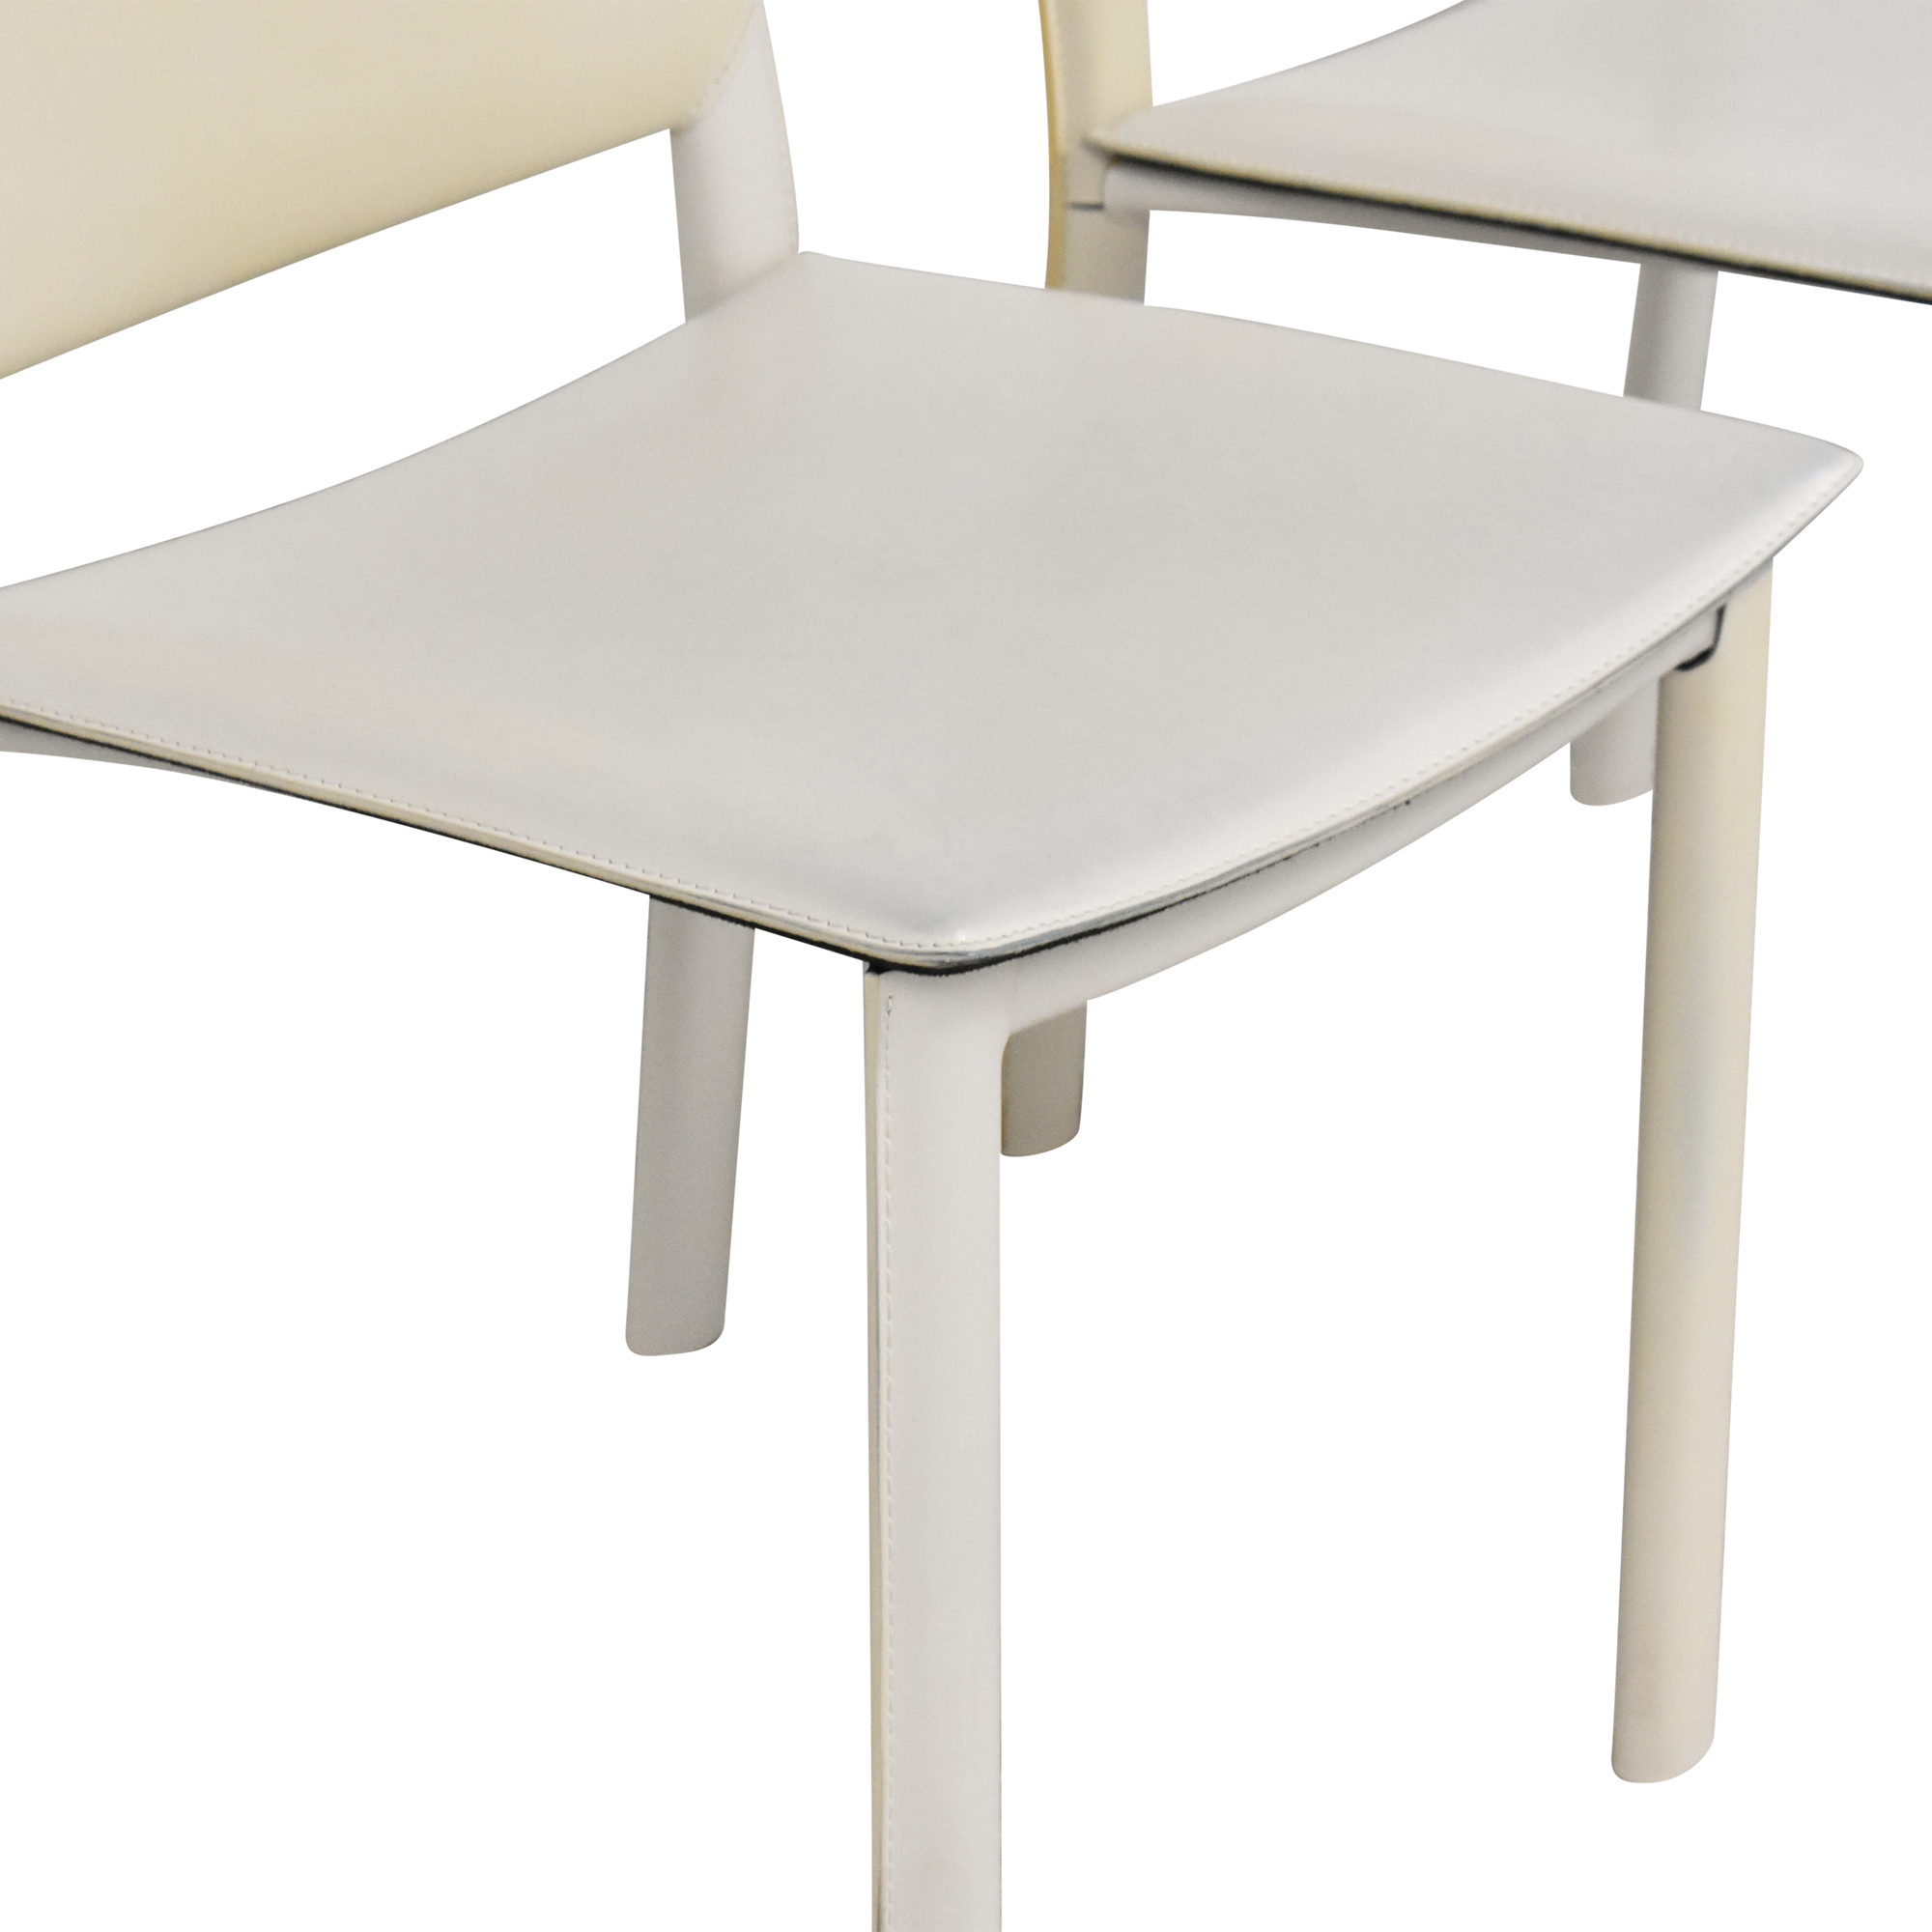 Room & Board Madrid Dining Chairs sale